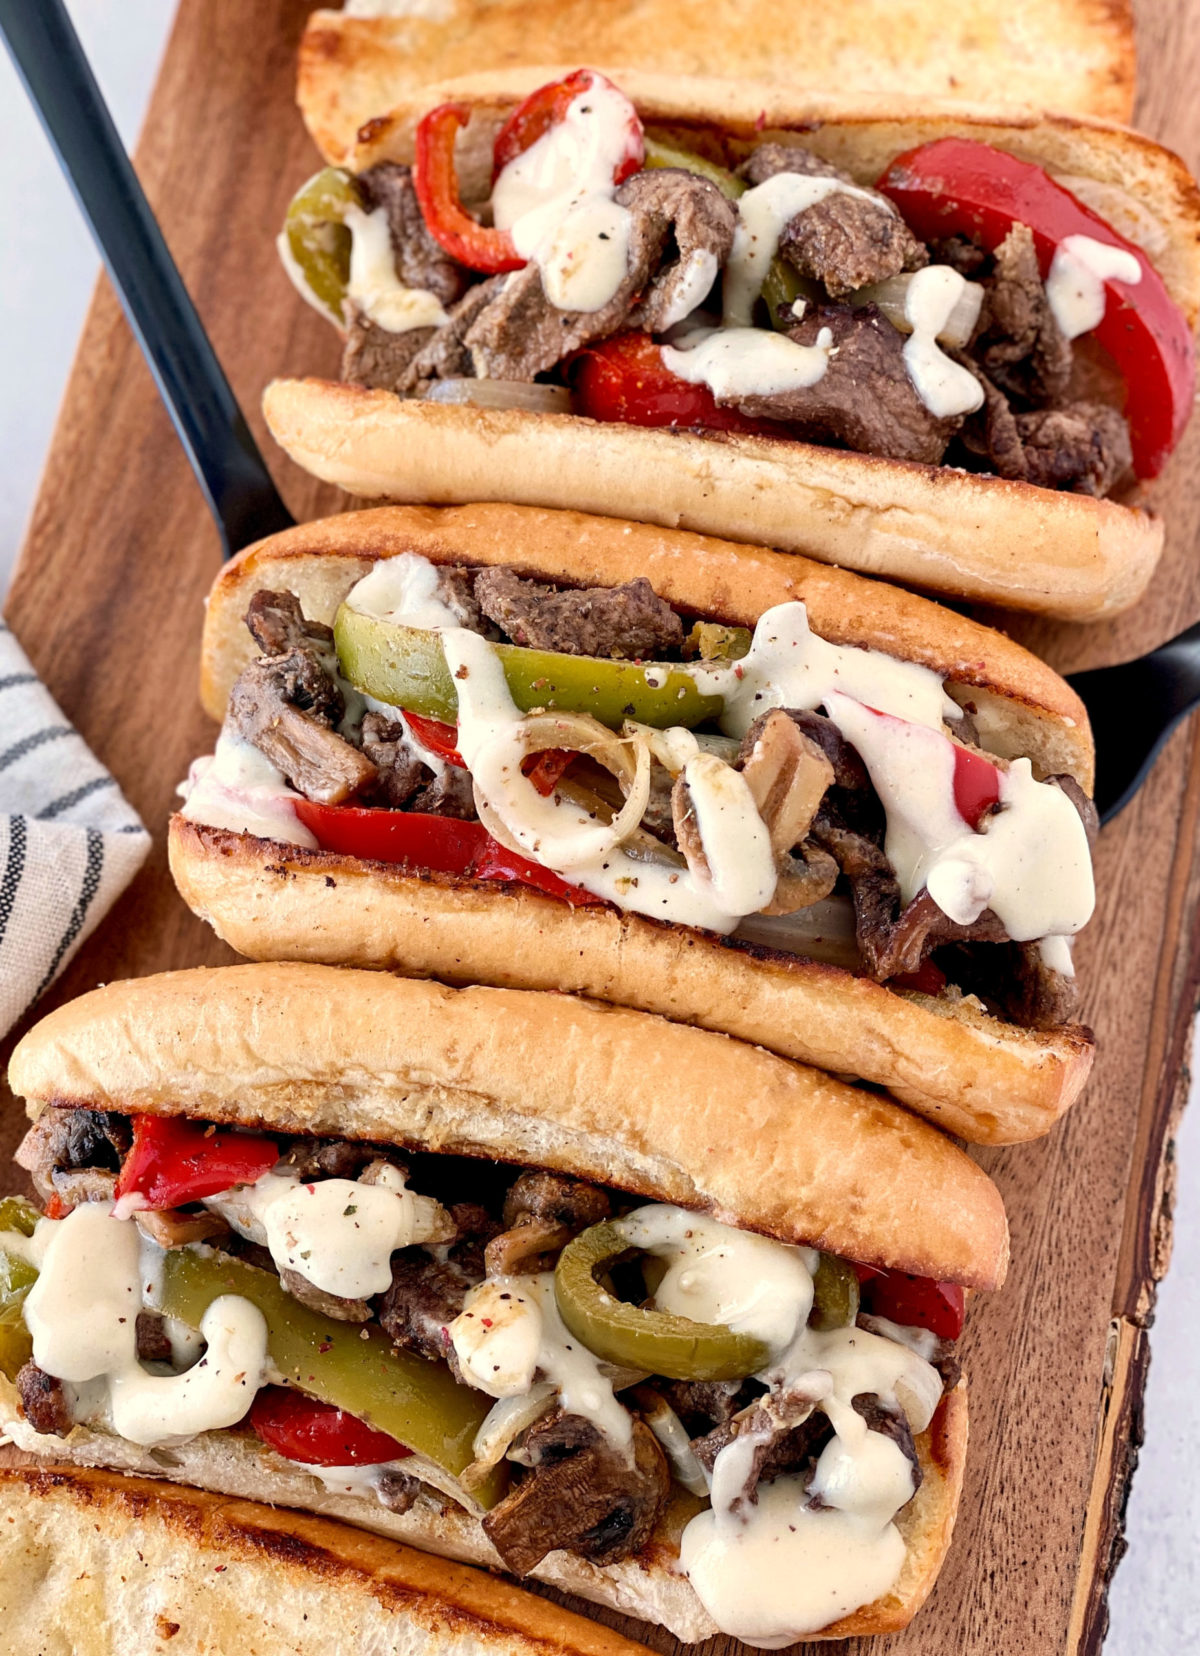 philly cheesesteak on a wooden board